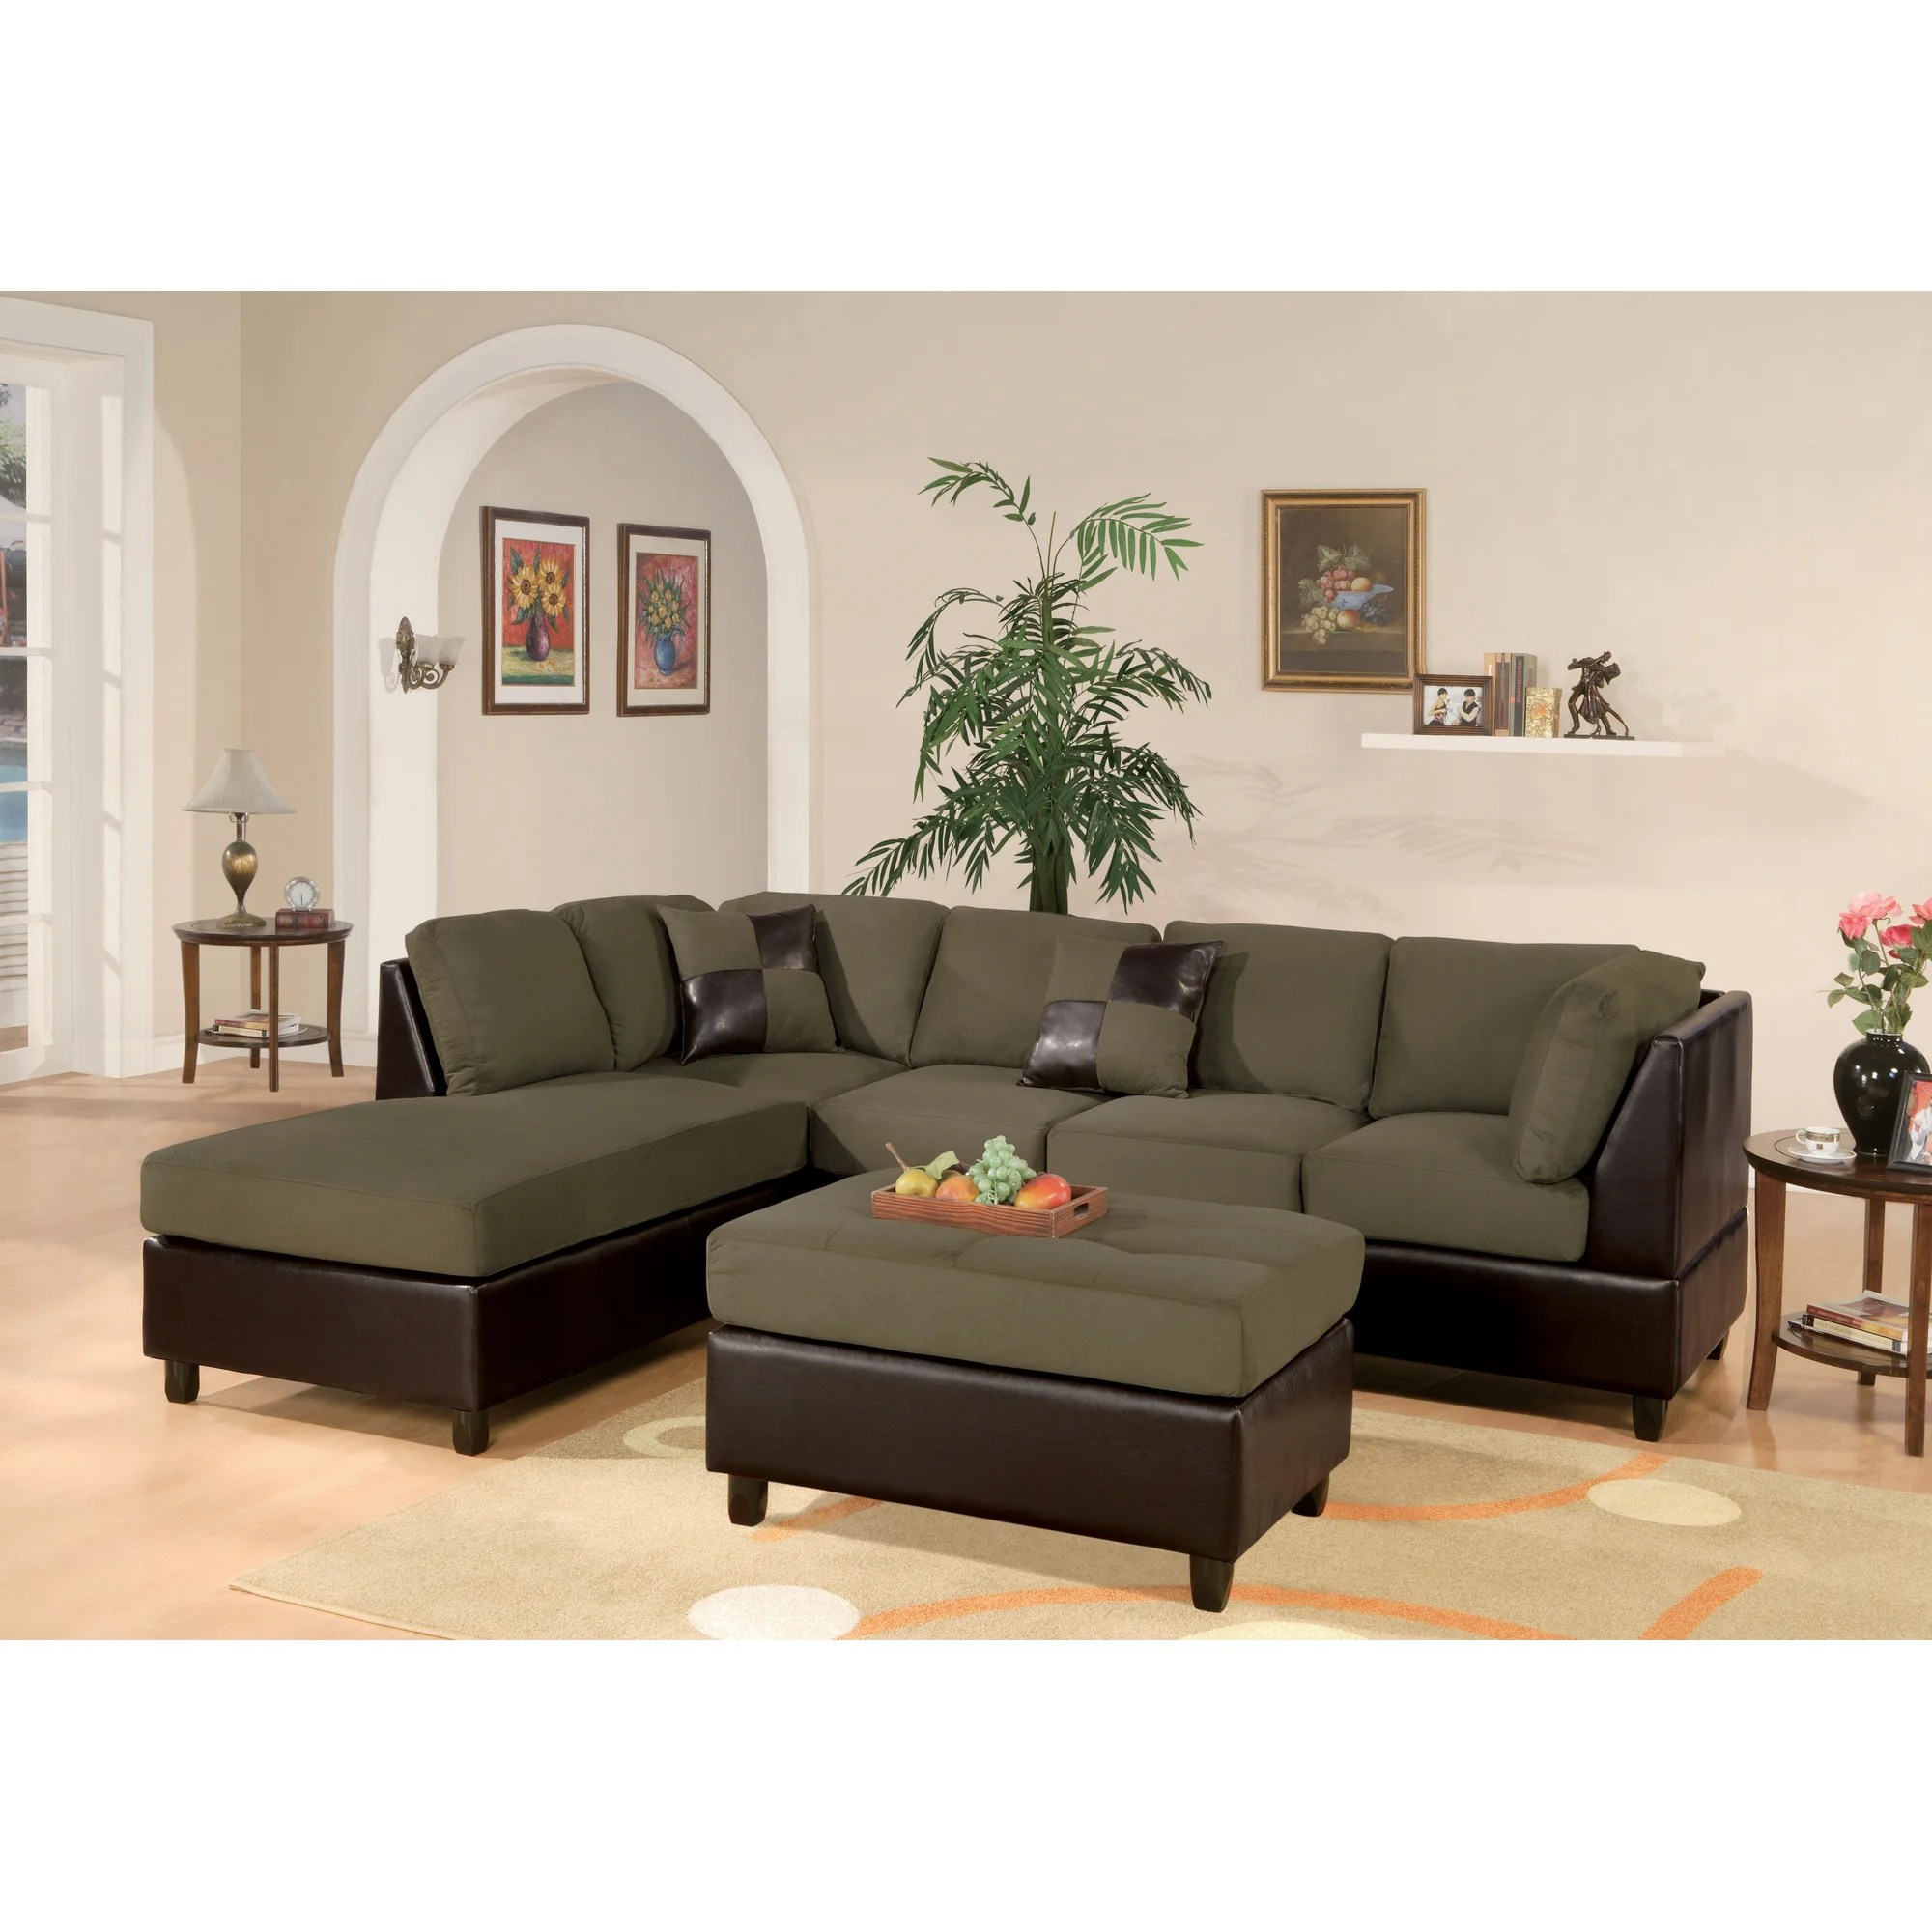 hayden sectional sofa with reversible chaise best bed sleepers inspirational sofas